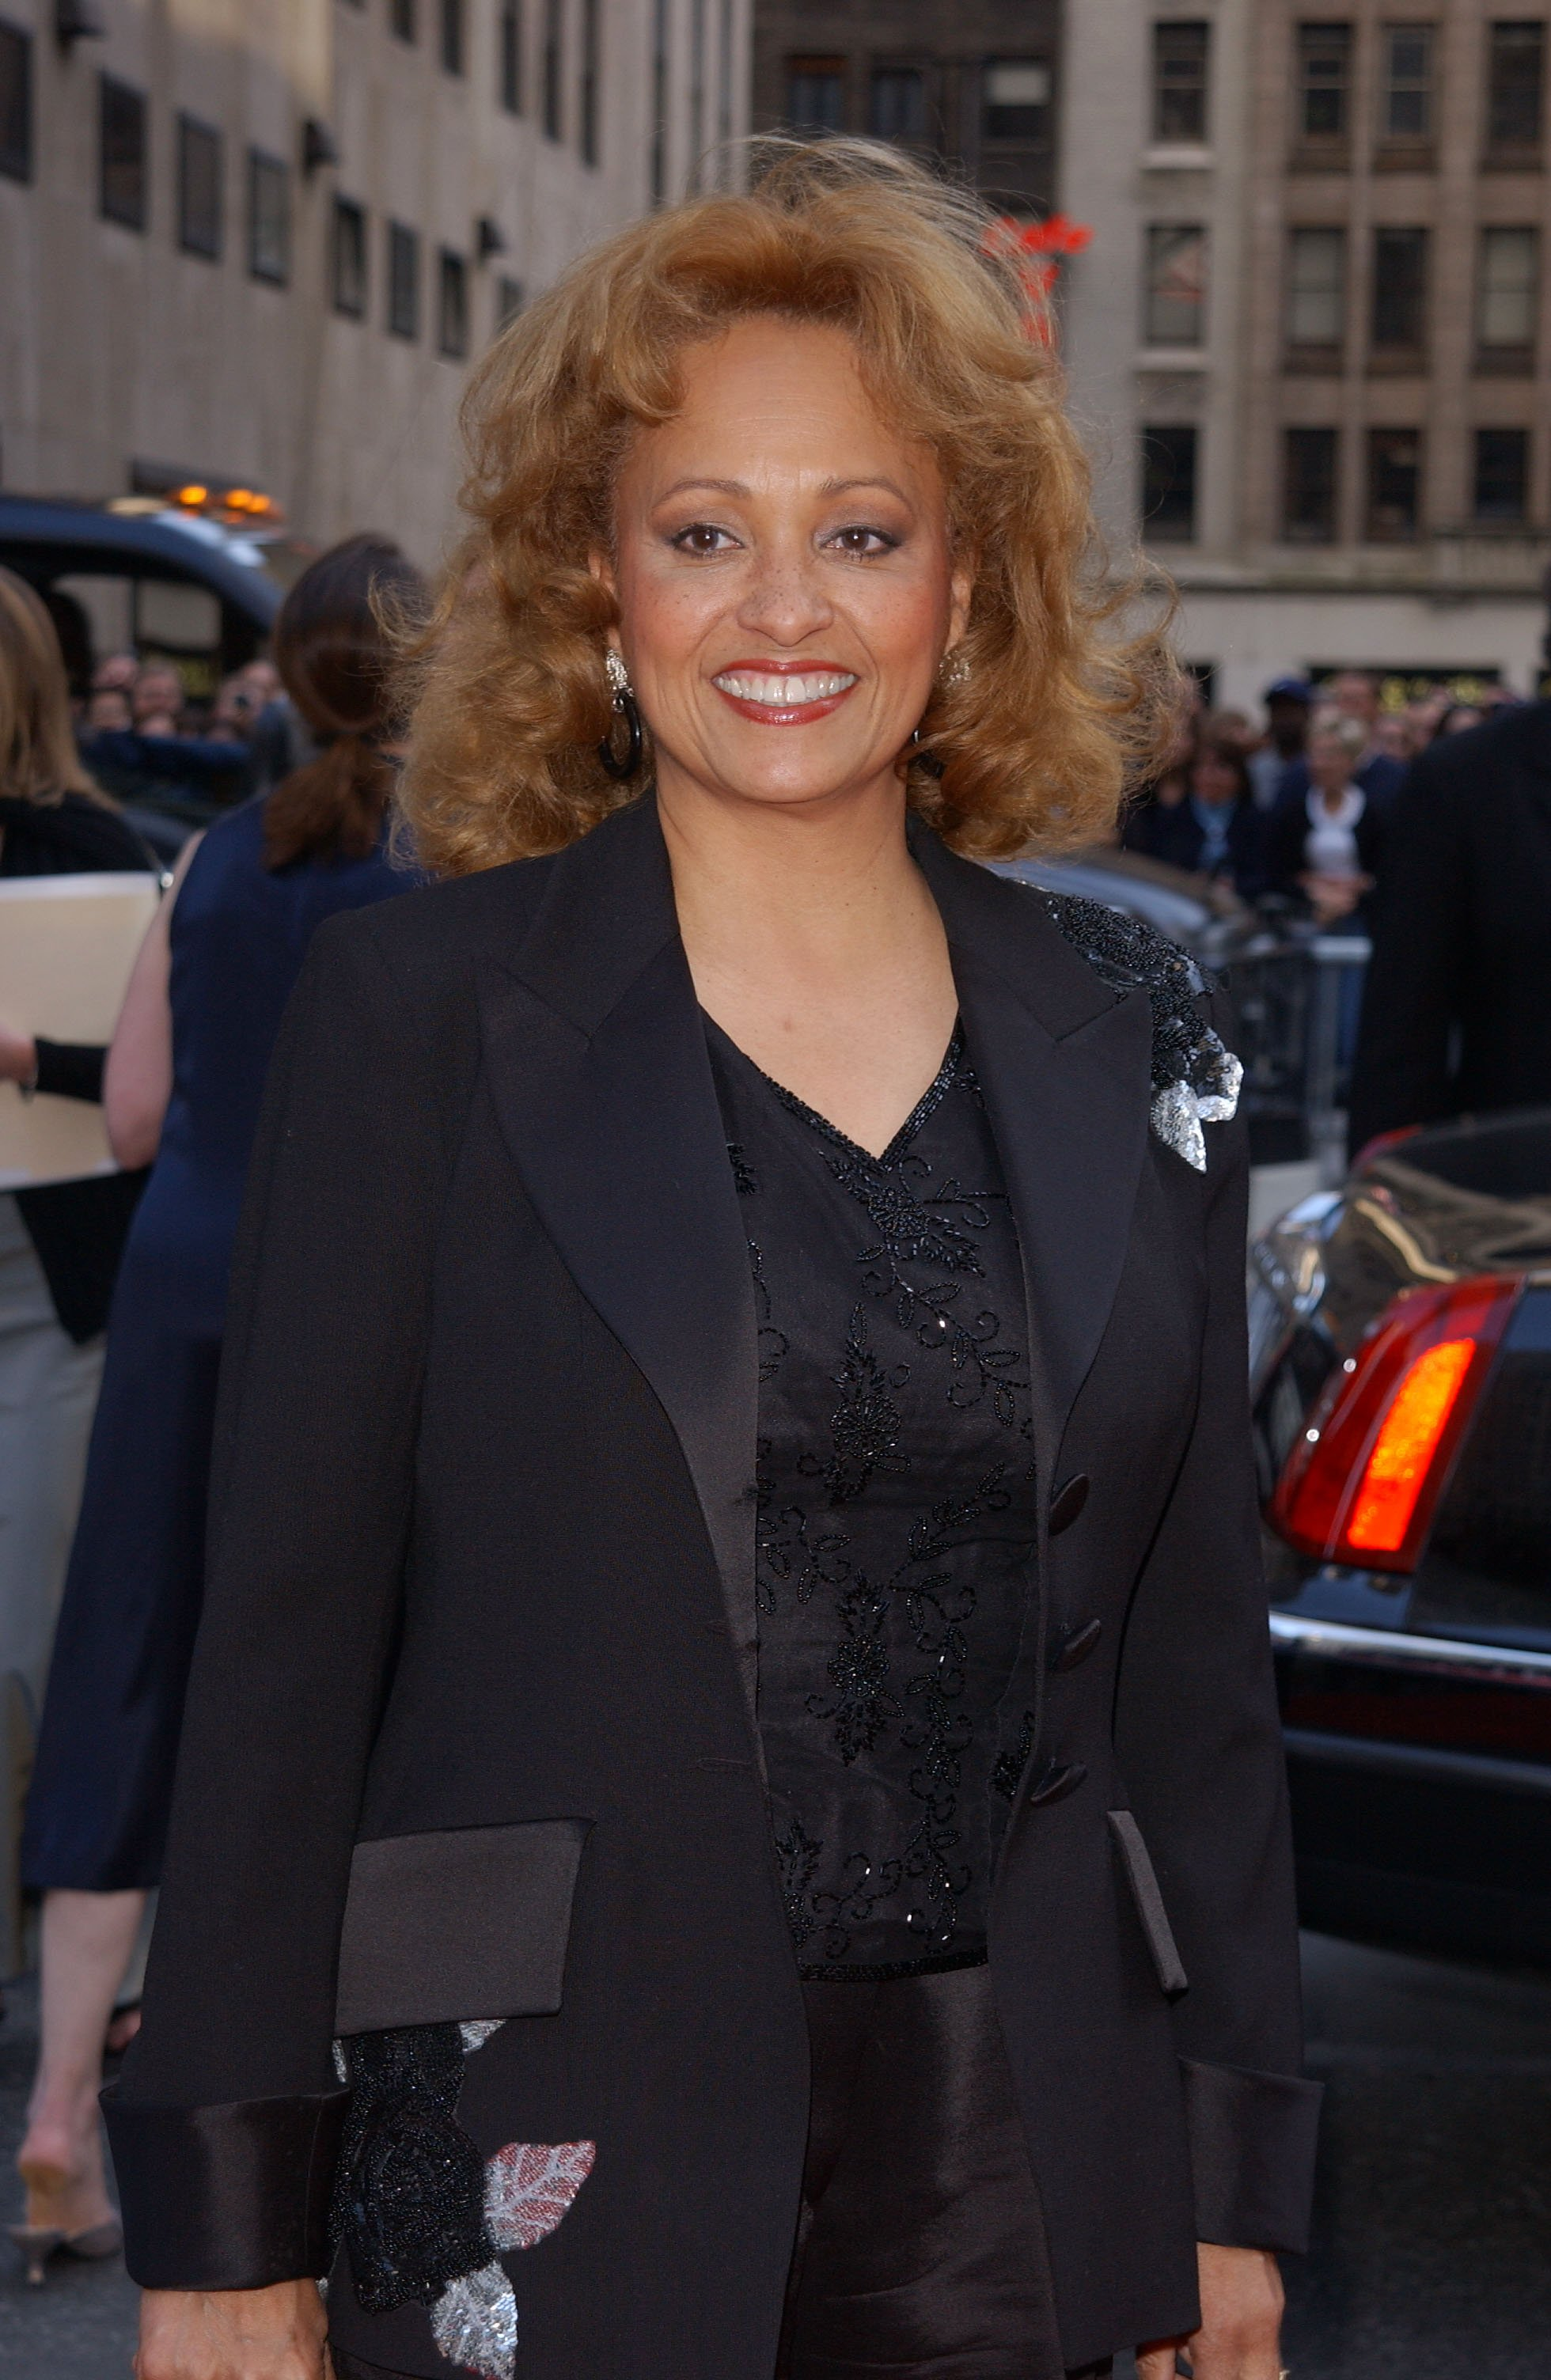 Daphne Maxwell Reid in New York City, on May 5, 2002   Photo: Getty Images